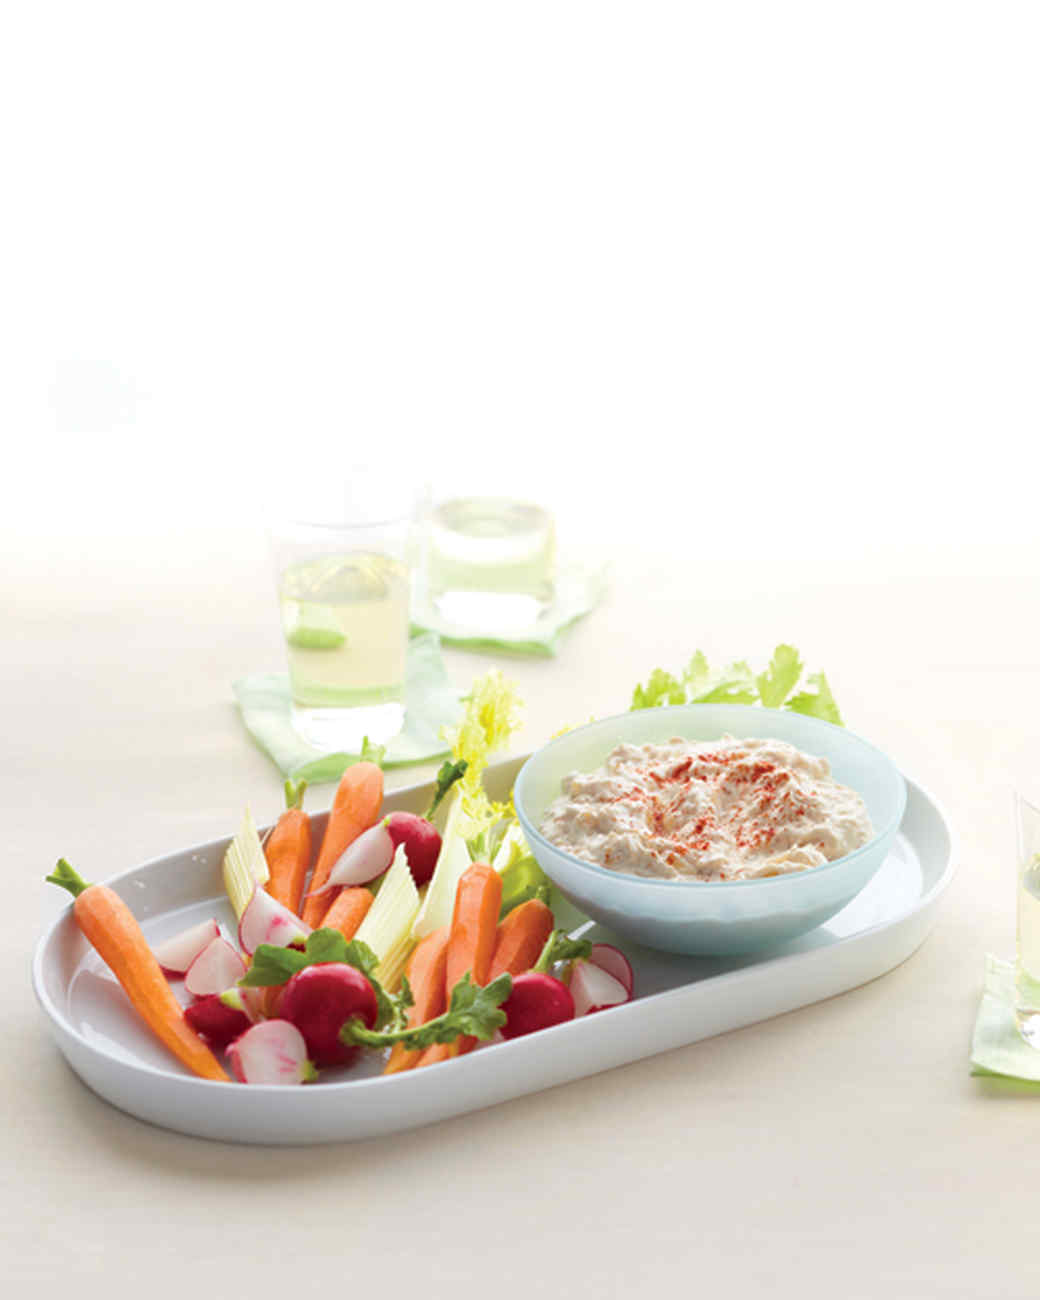 Caramelized-Onion Dip with Vegetables